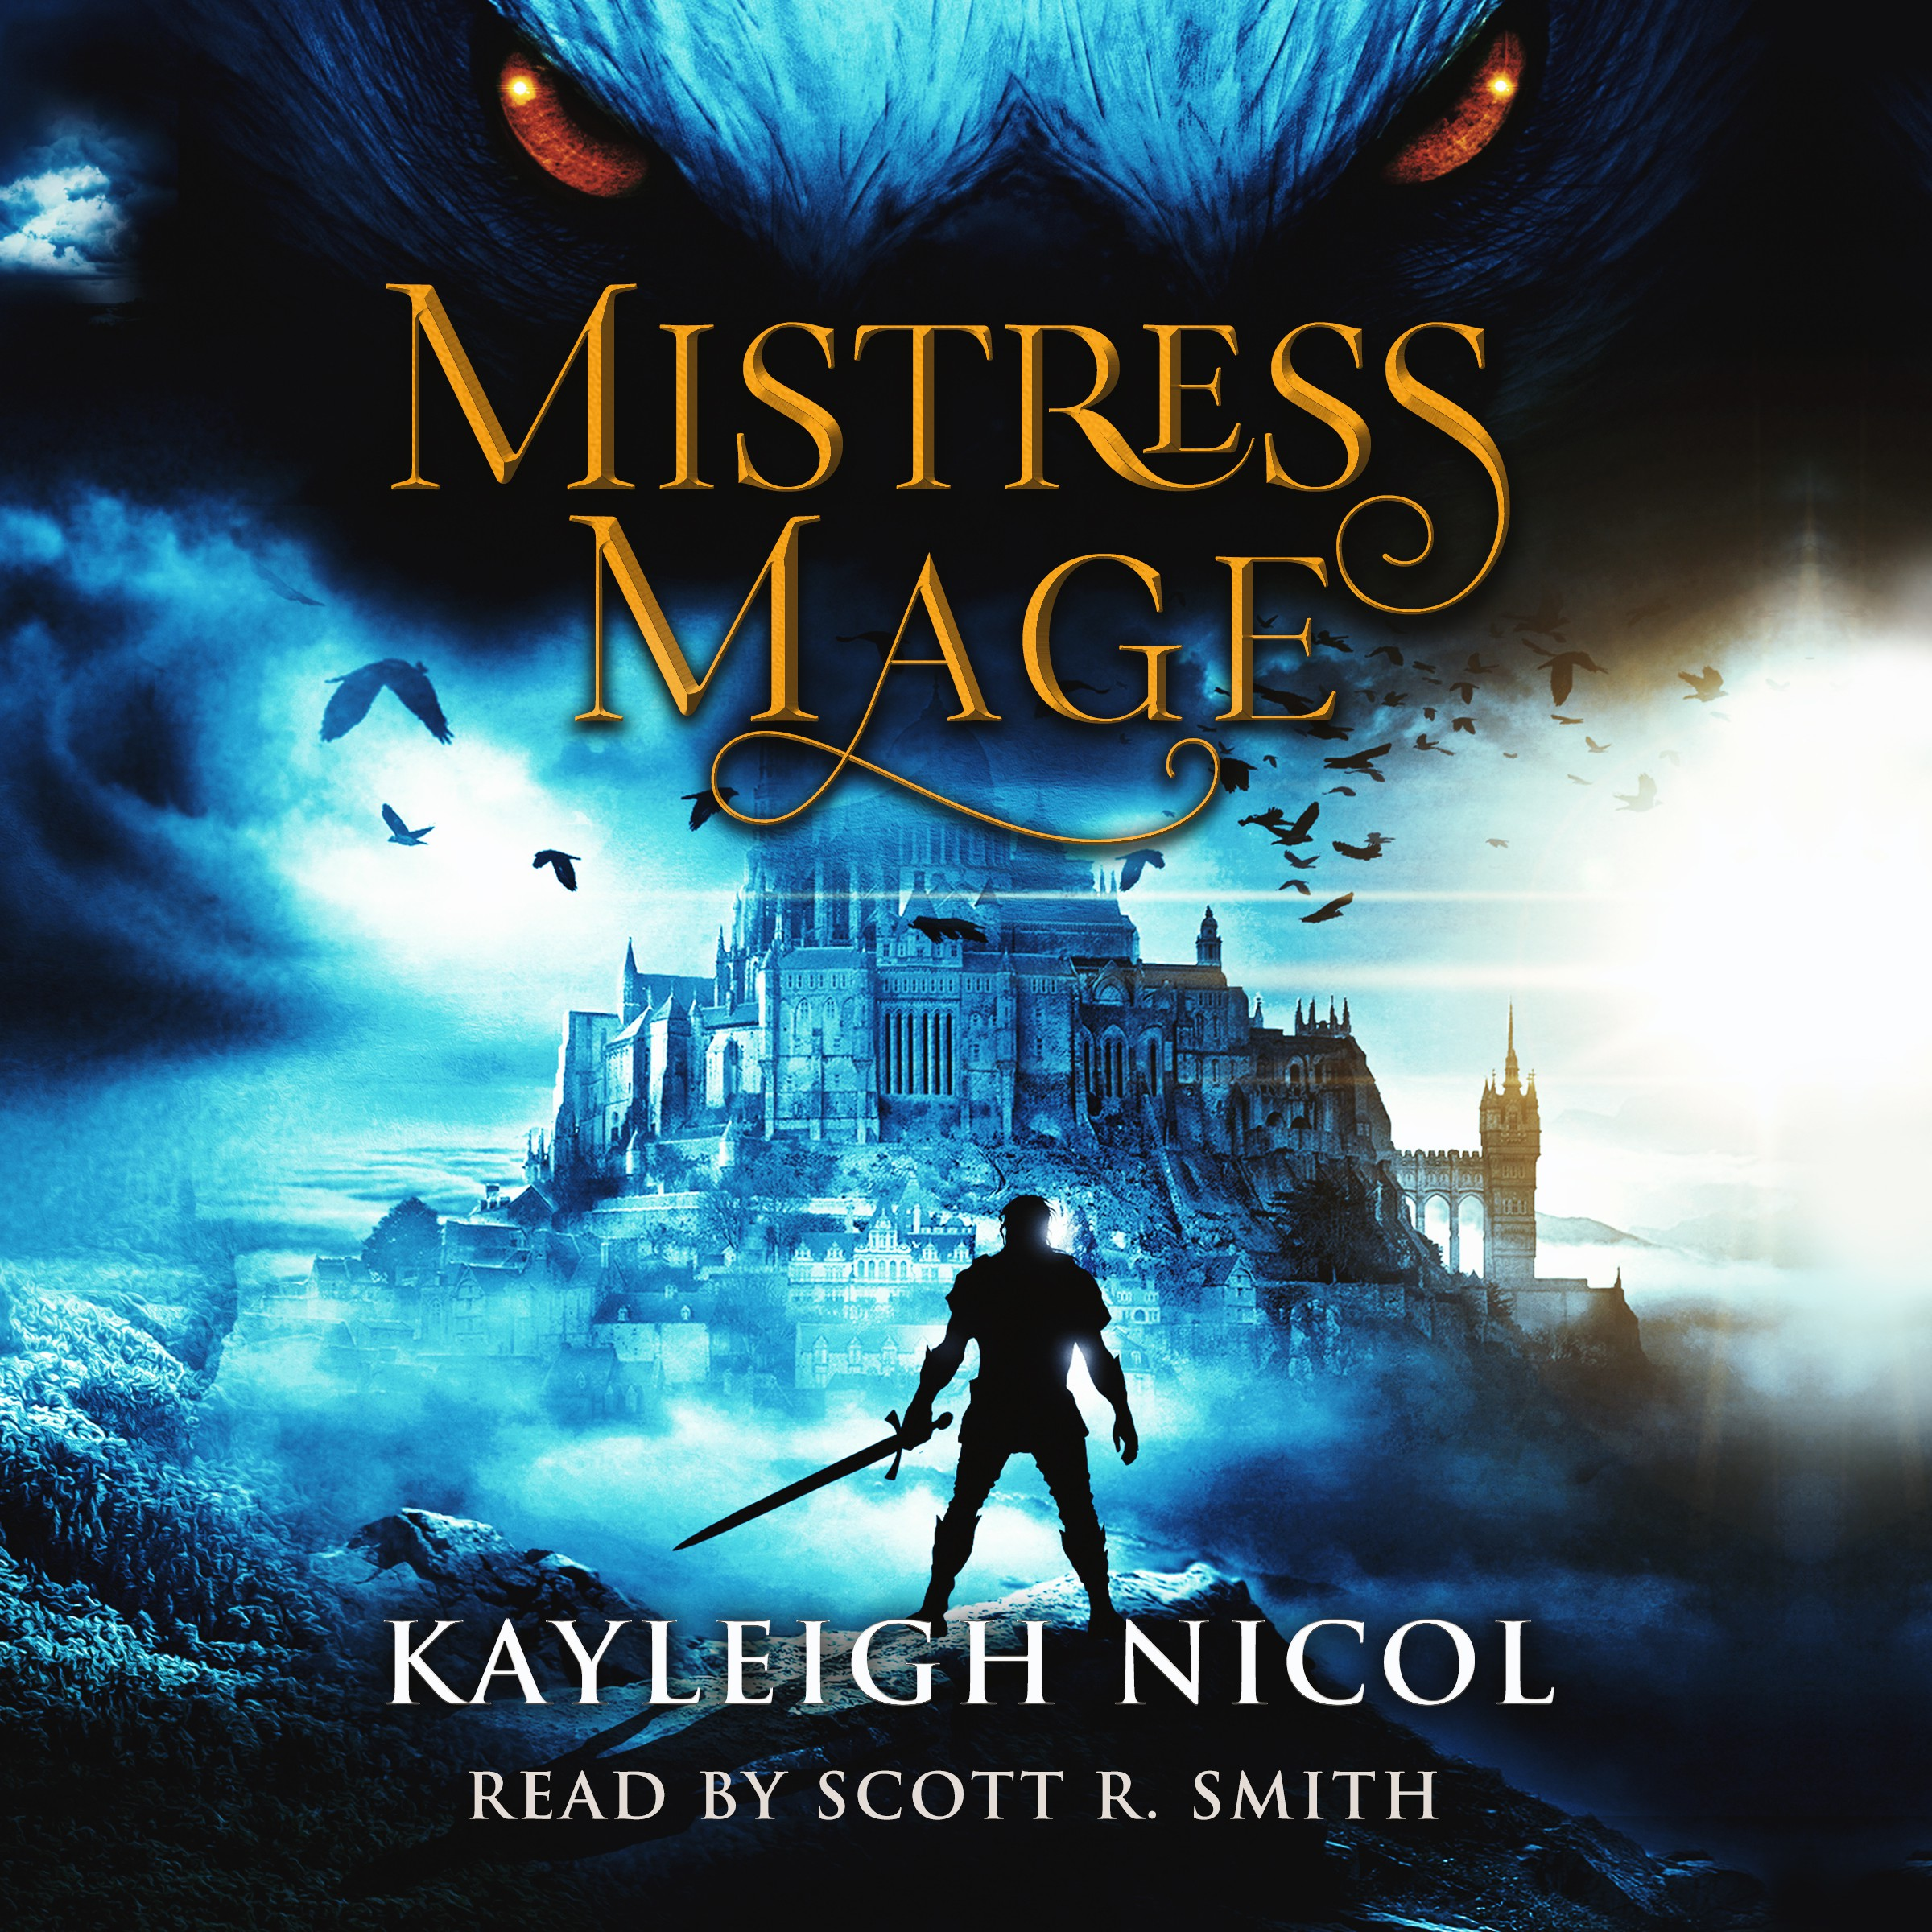 Convert E-Book Cover to Audio Book Format - Mistress Mage